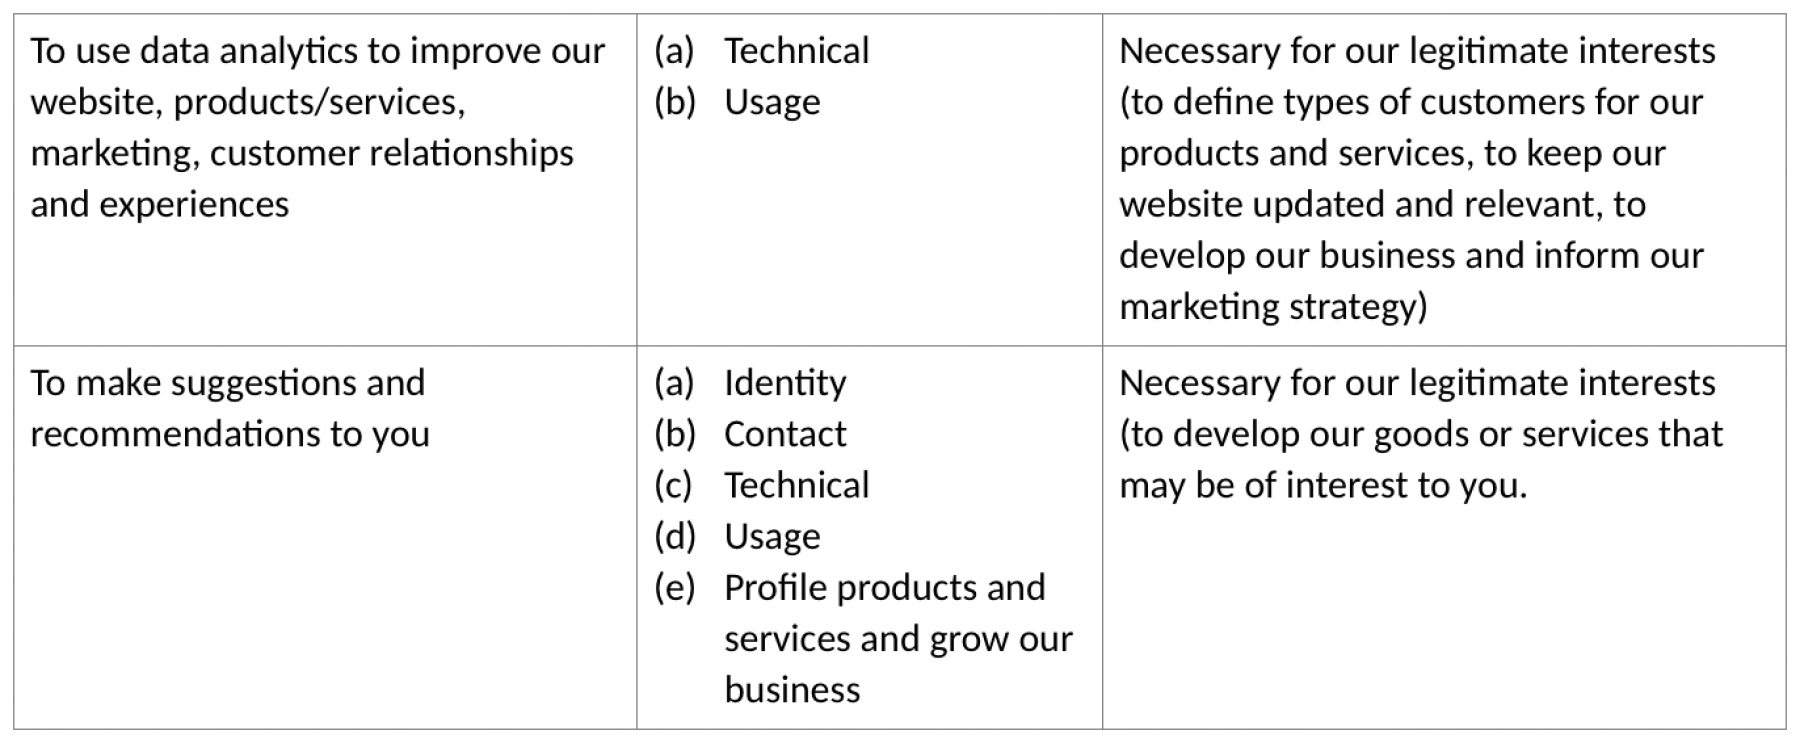 MSE Privacy Policy Table Image 2